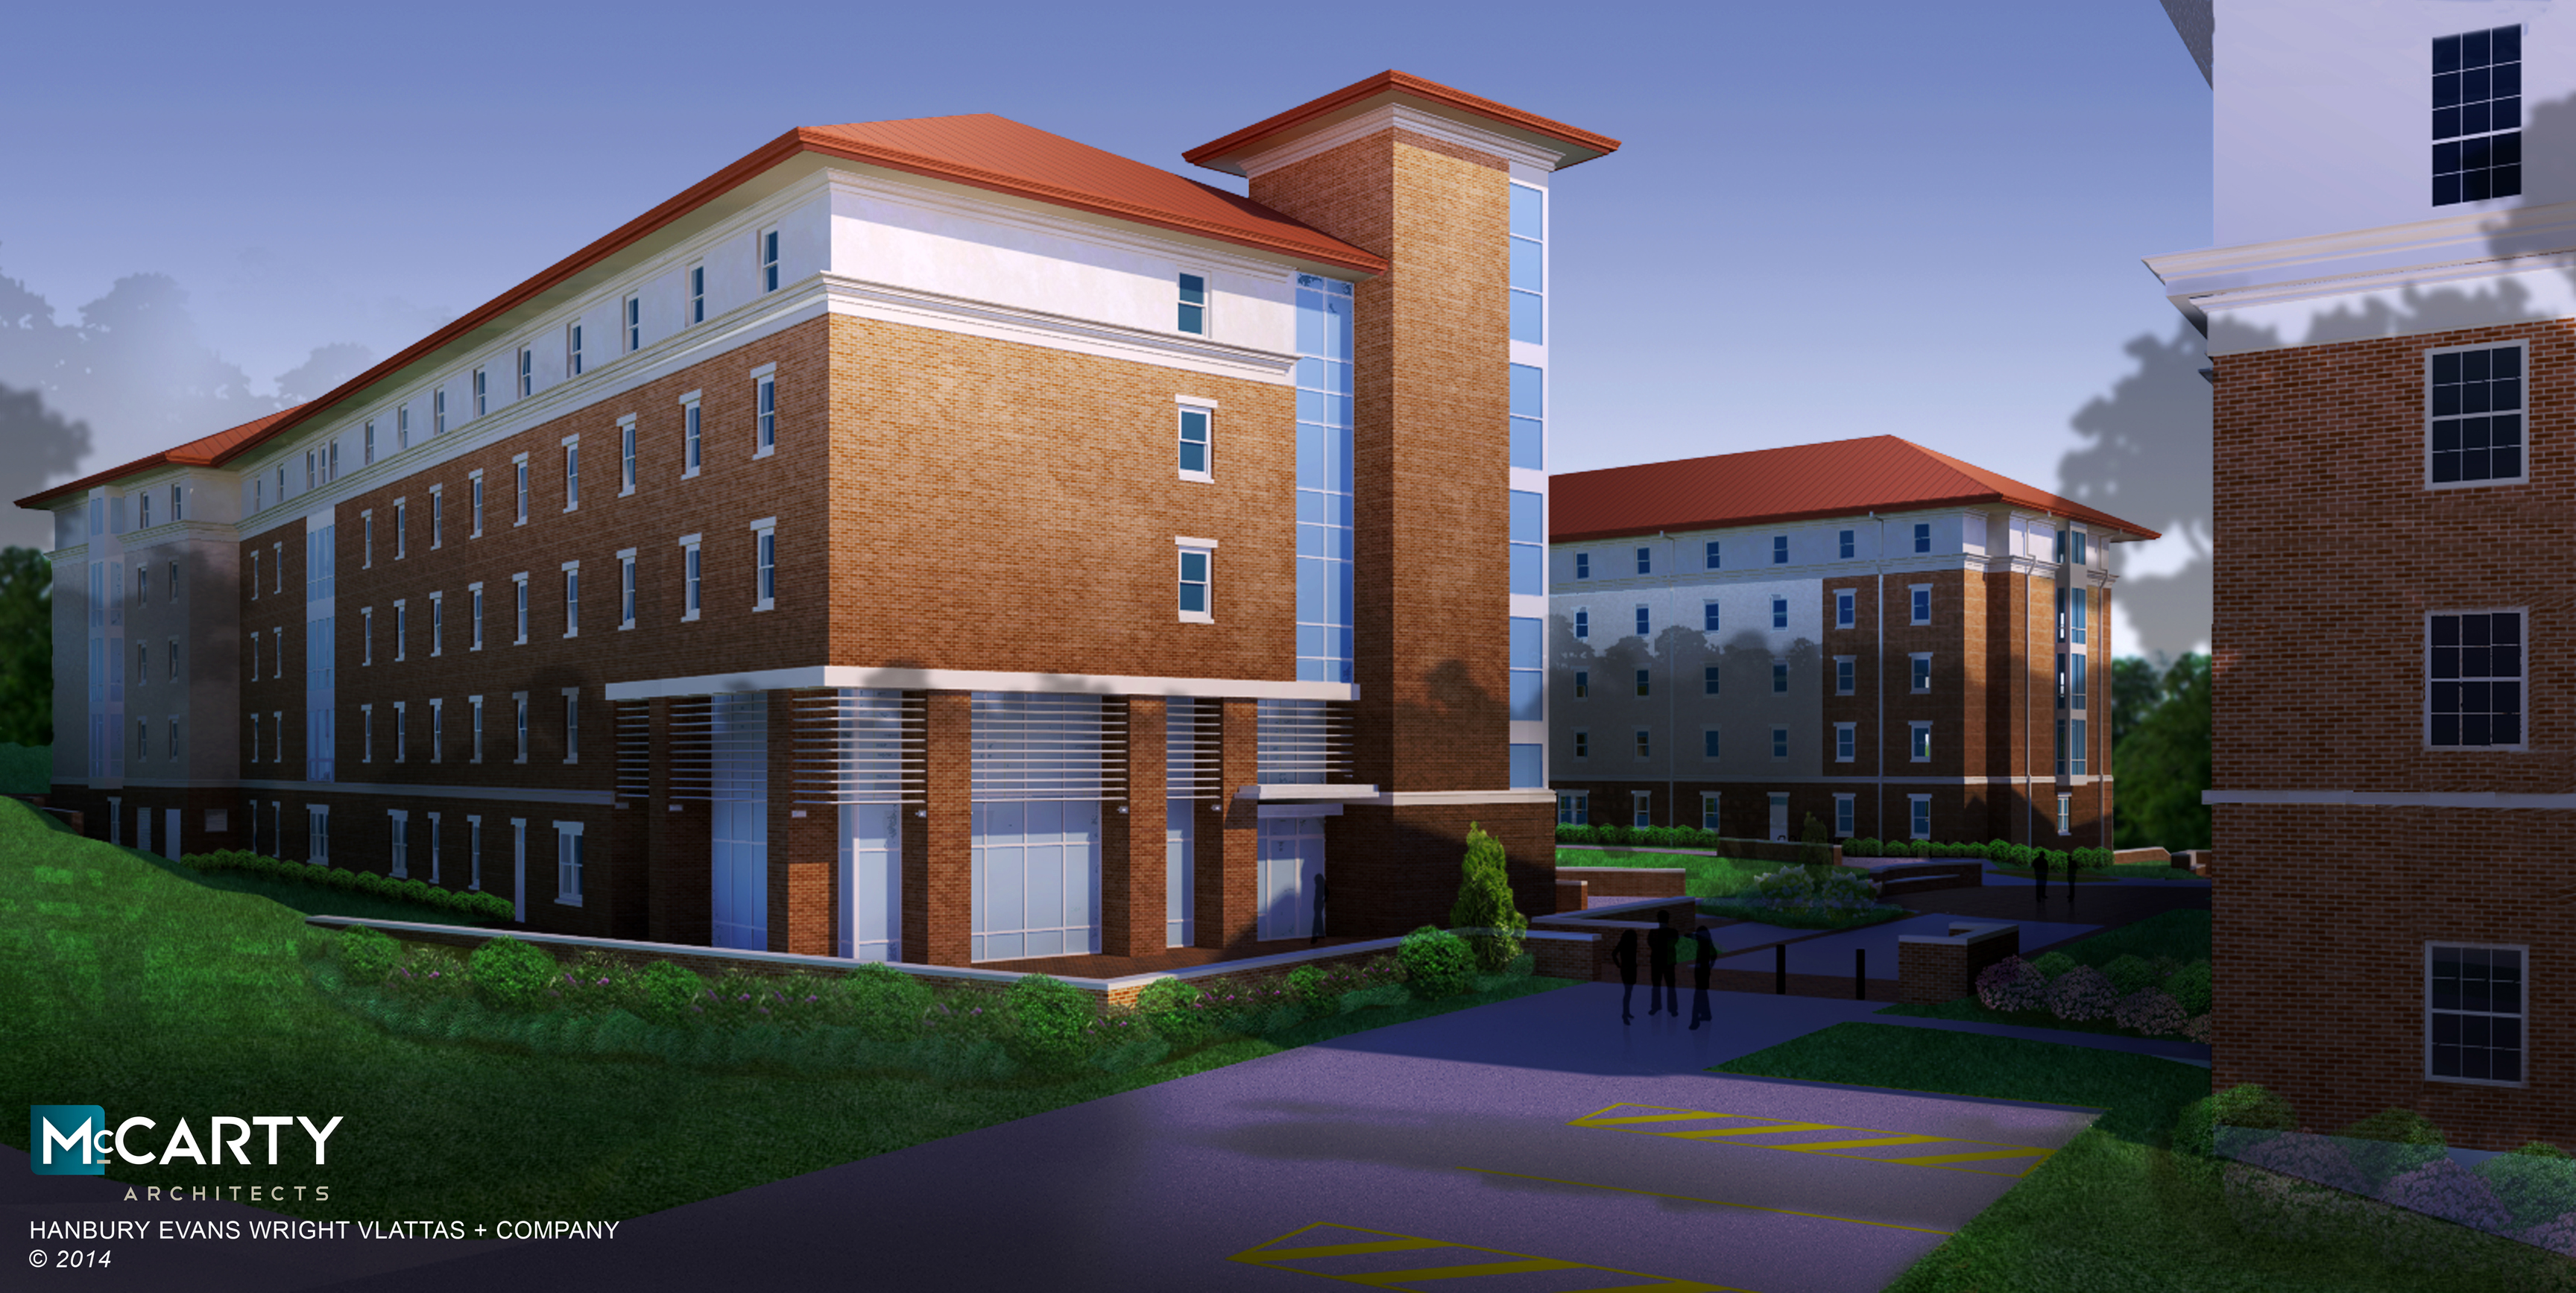 Garage Offices 33 Campus Construction Projects You Should Know About